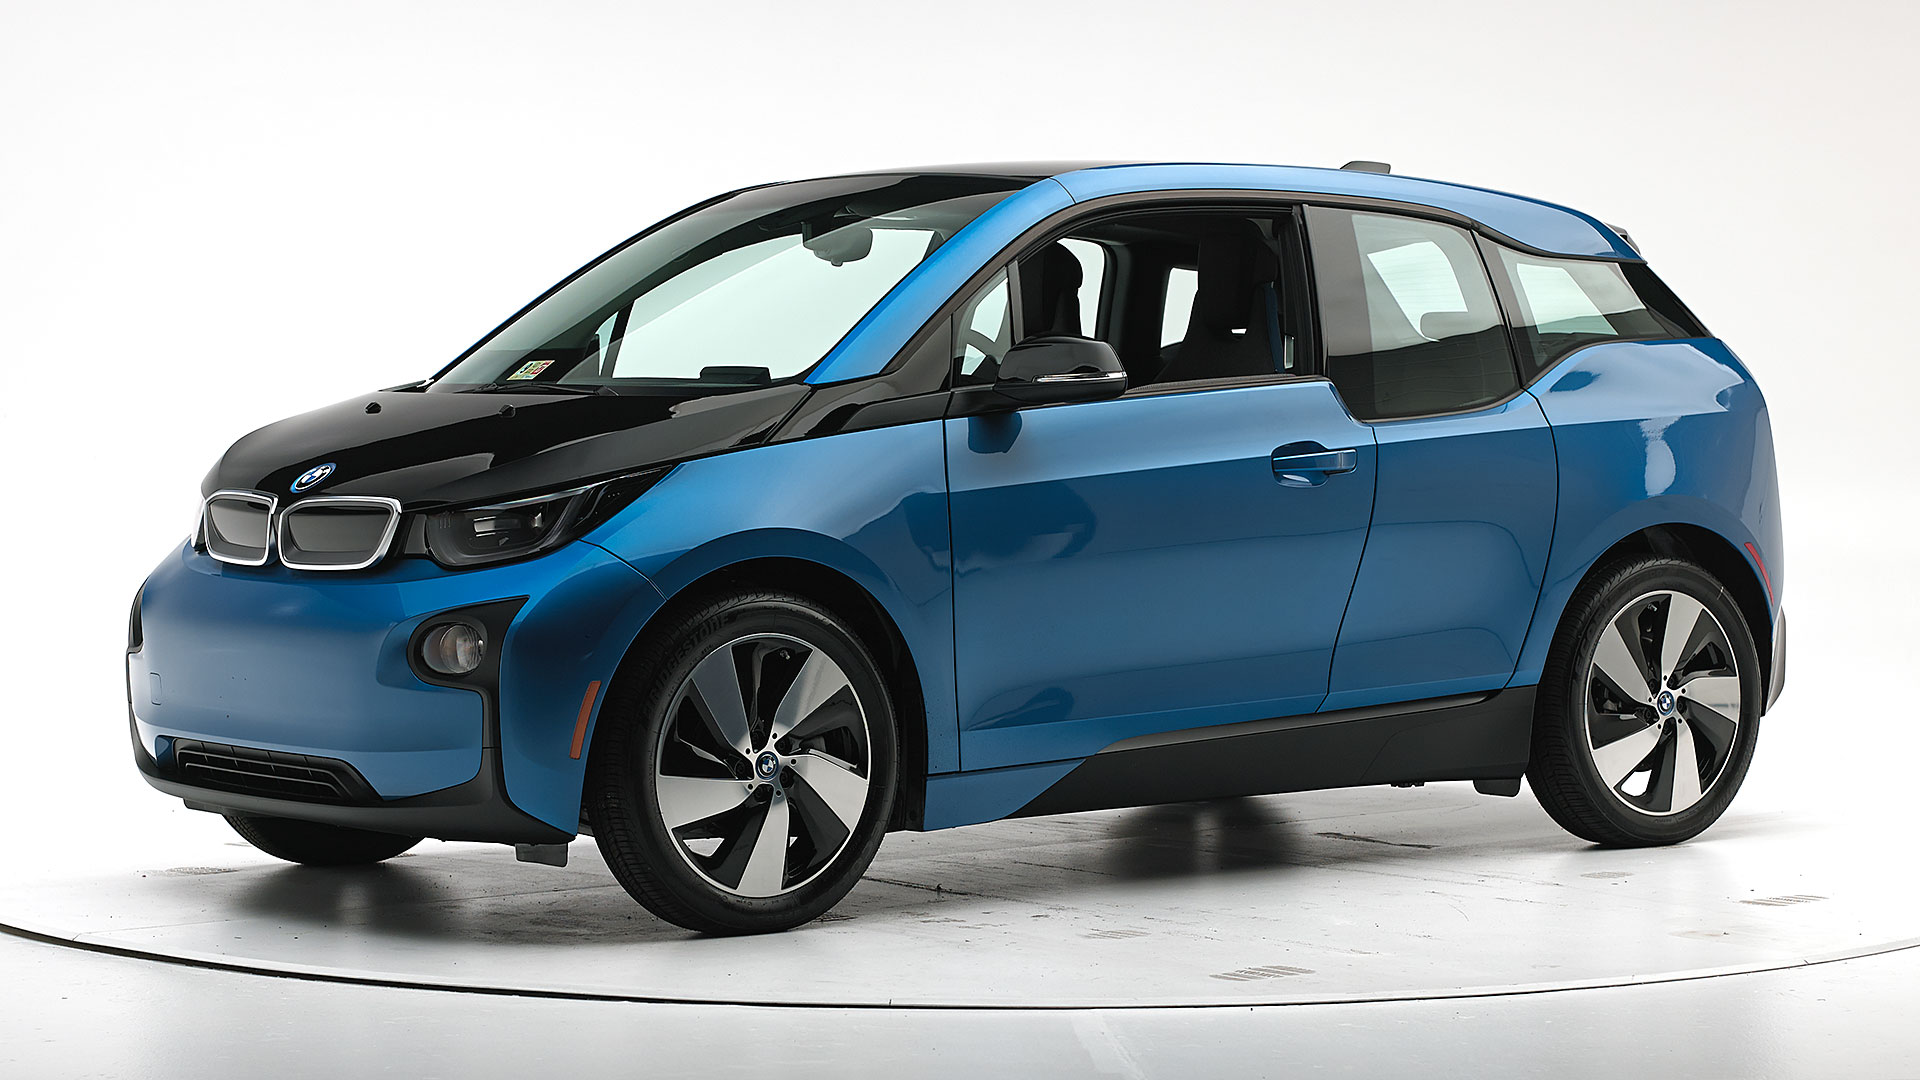 2018 BMW i3 4-door hatchback